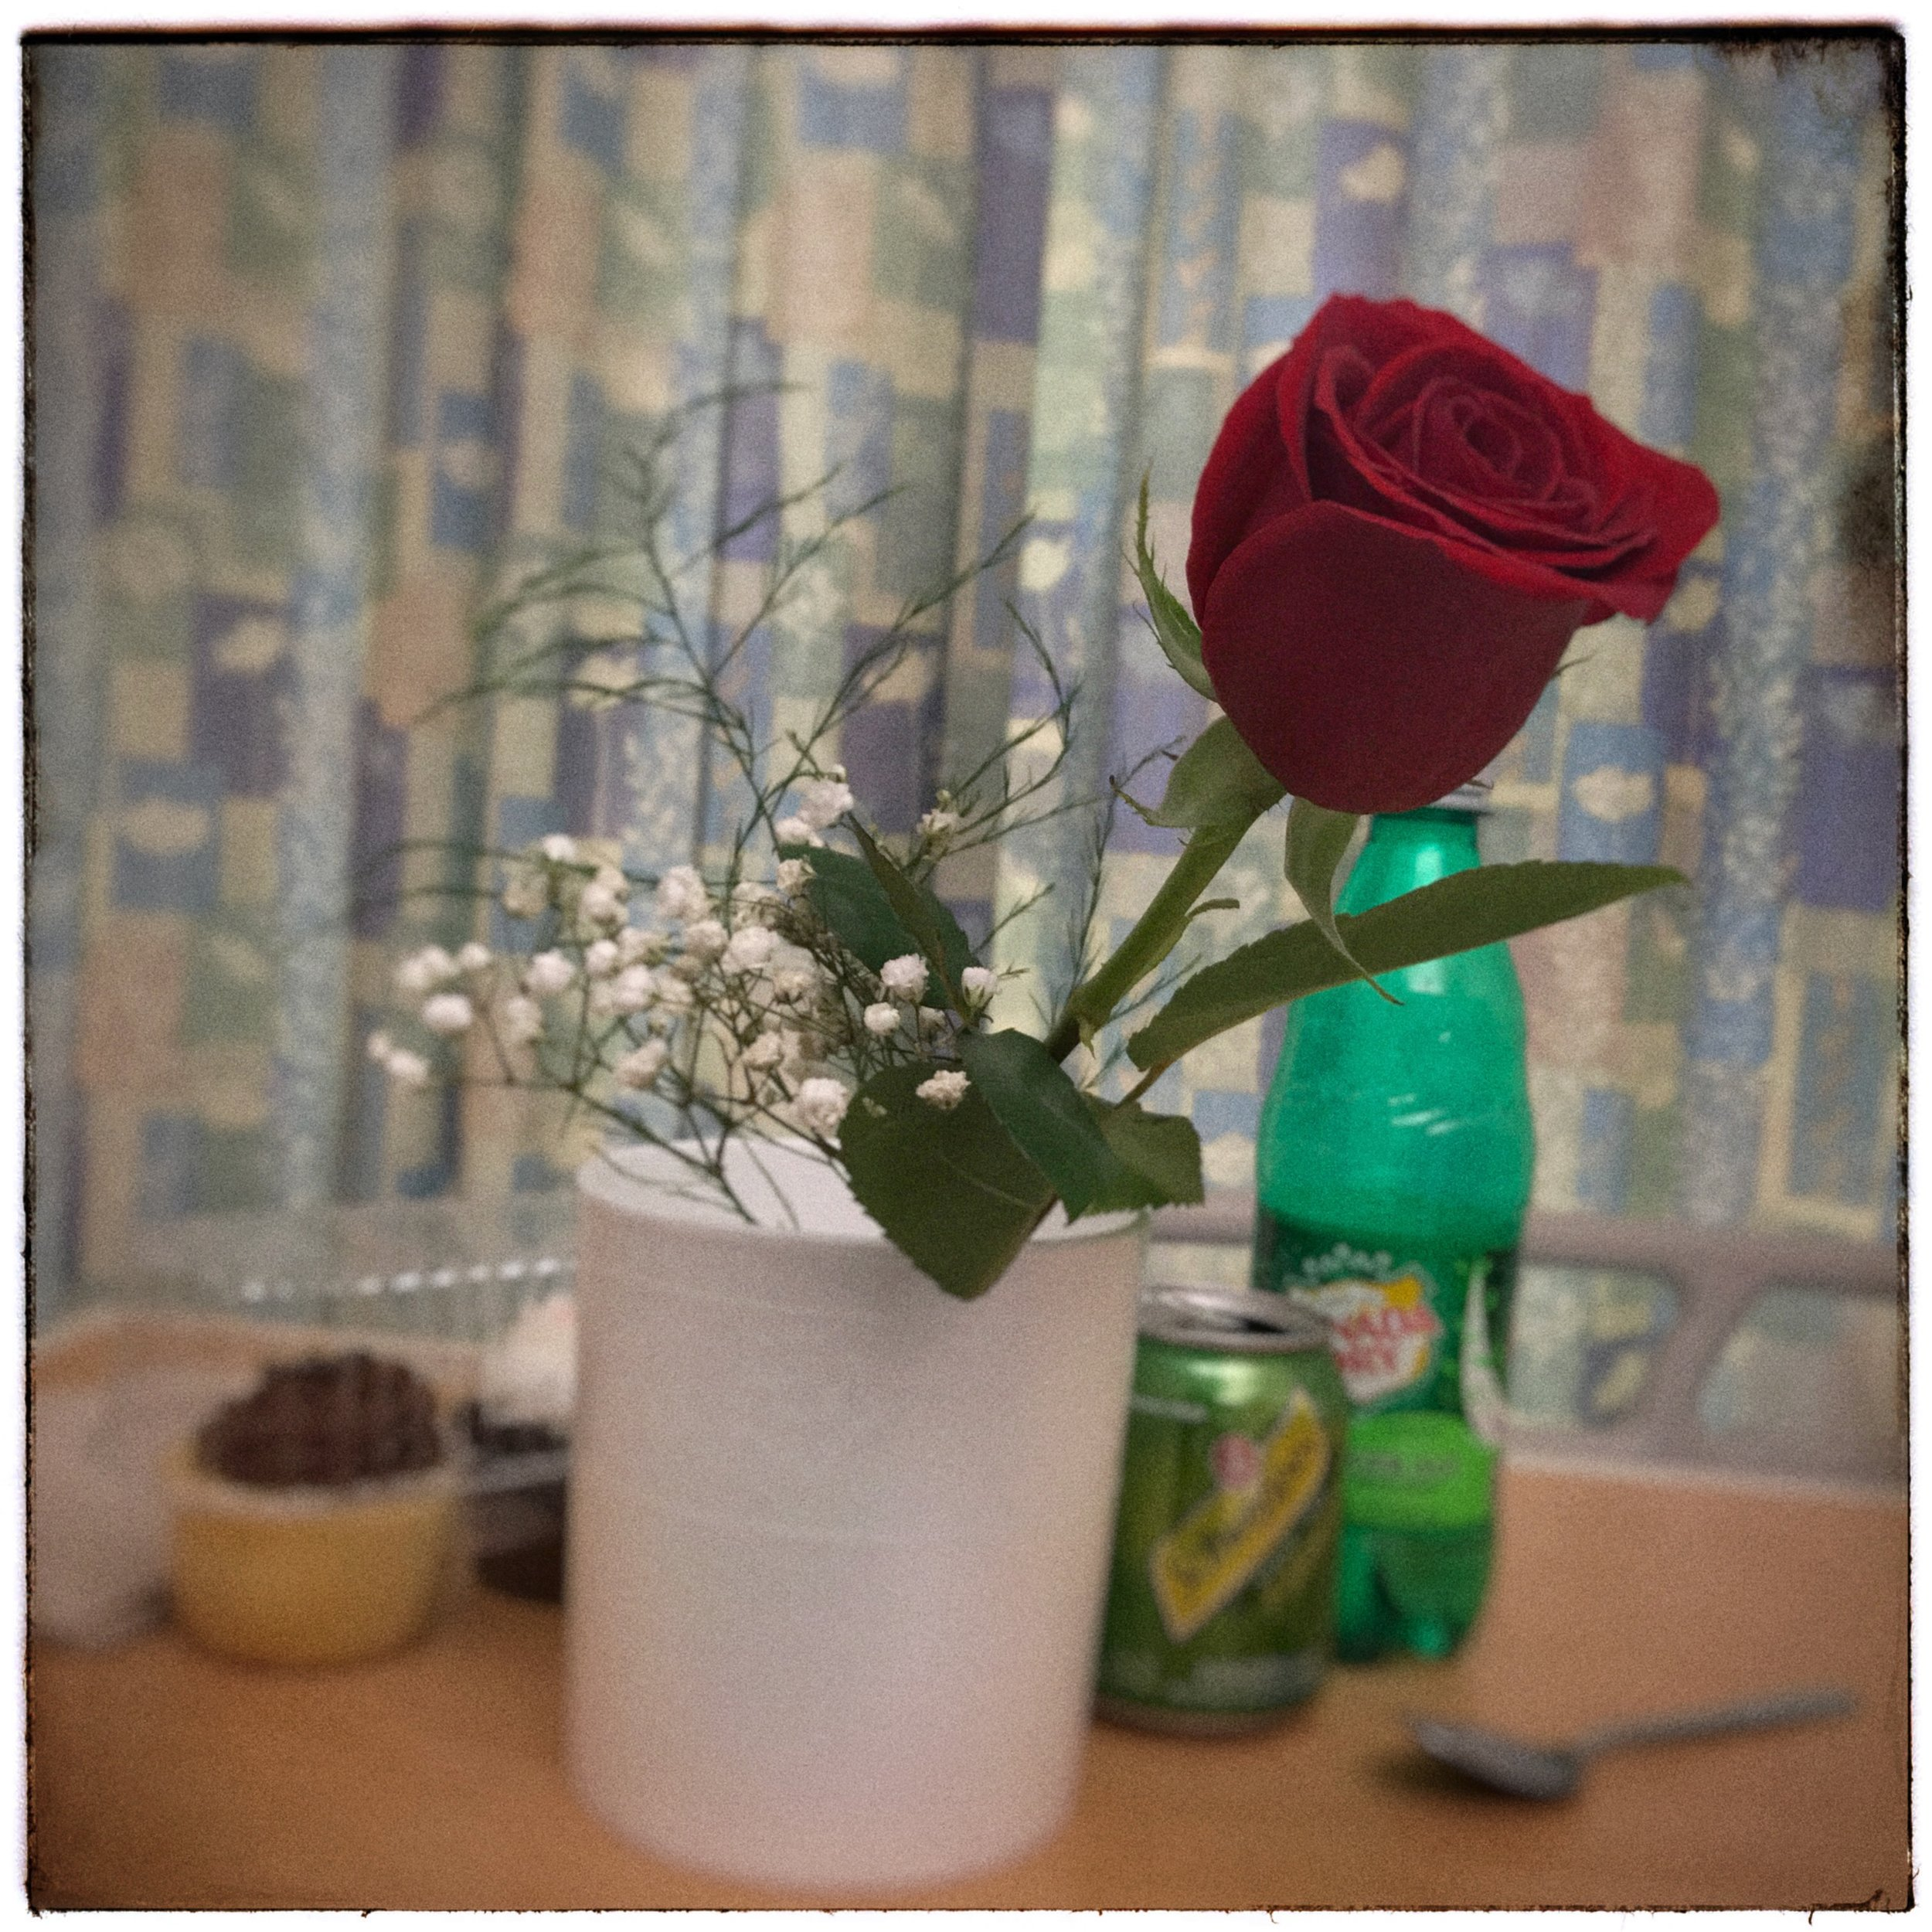 re-gifted rose to me from the wife    • iPhone